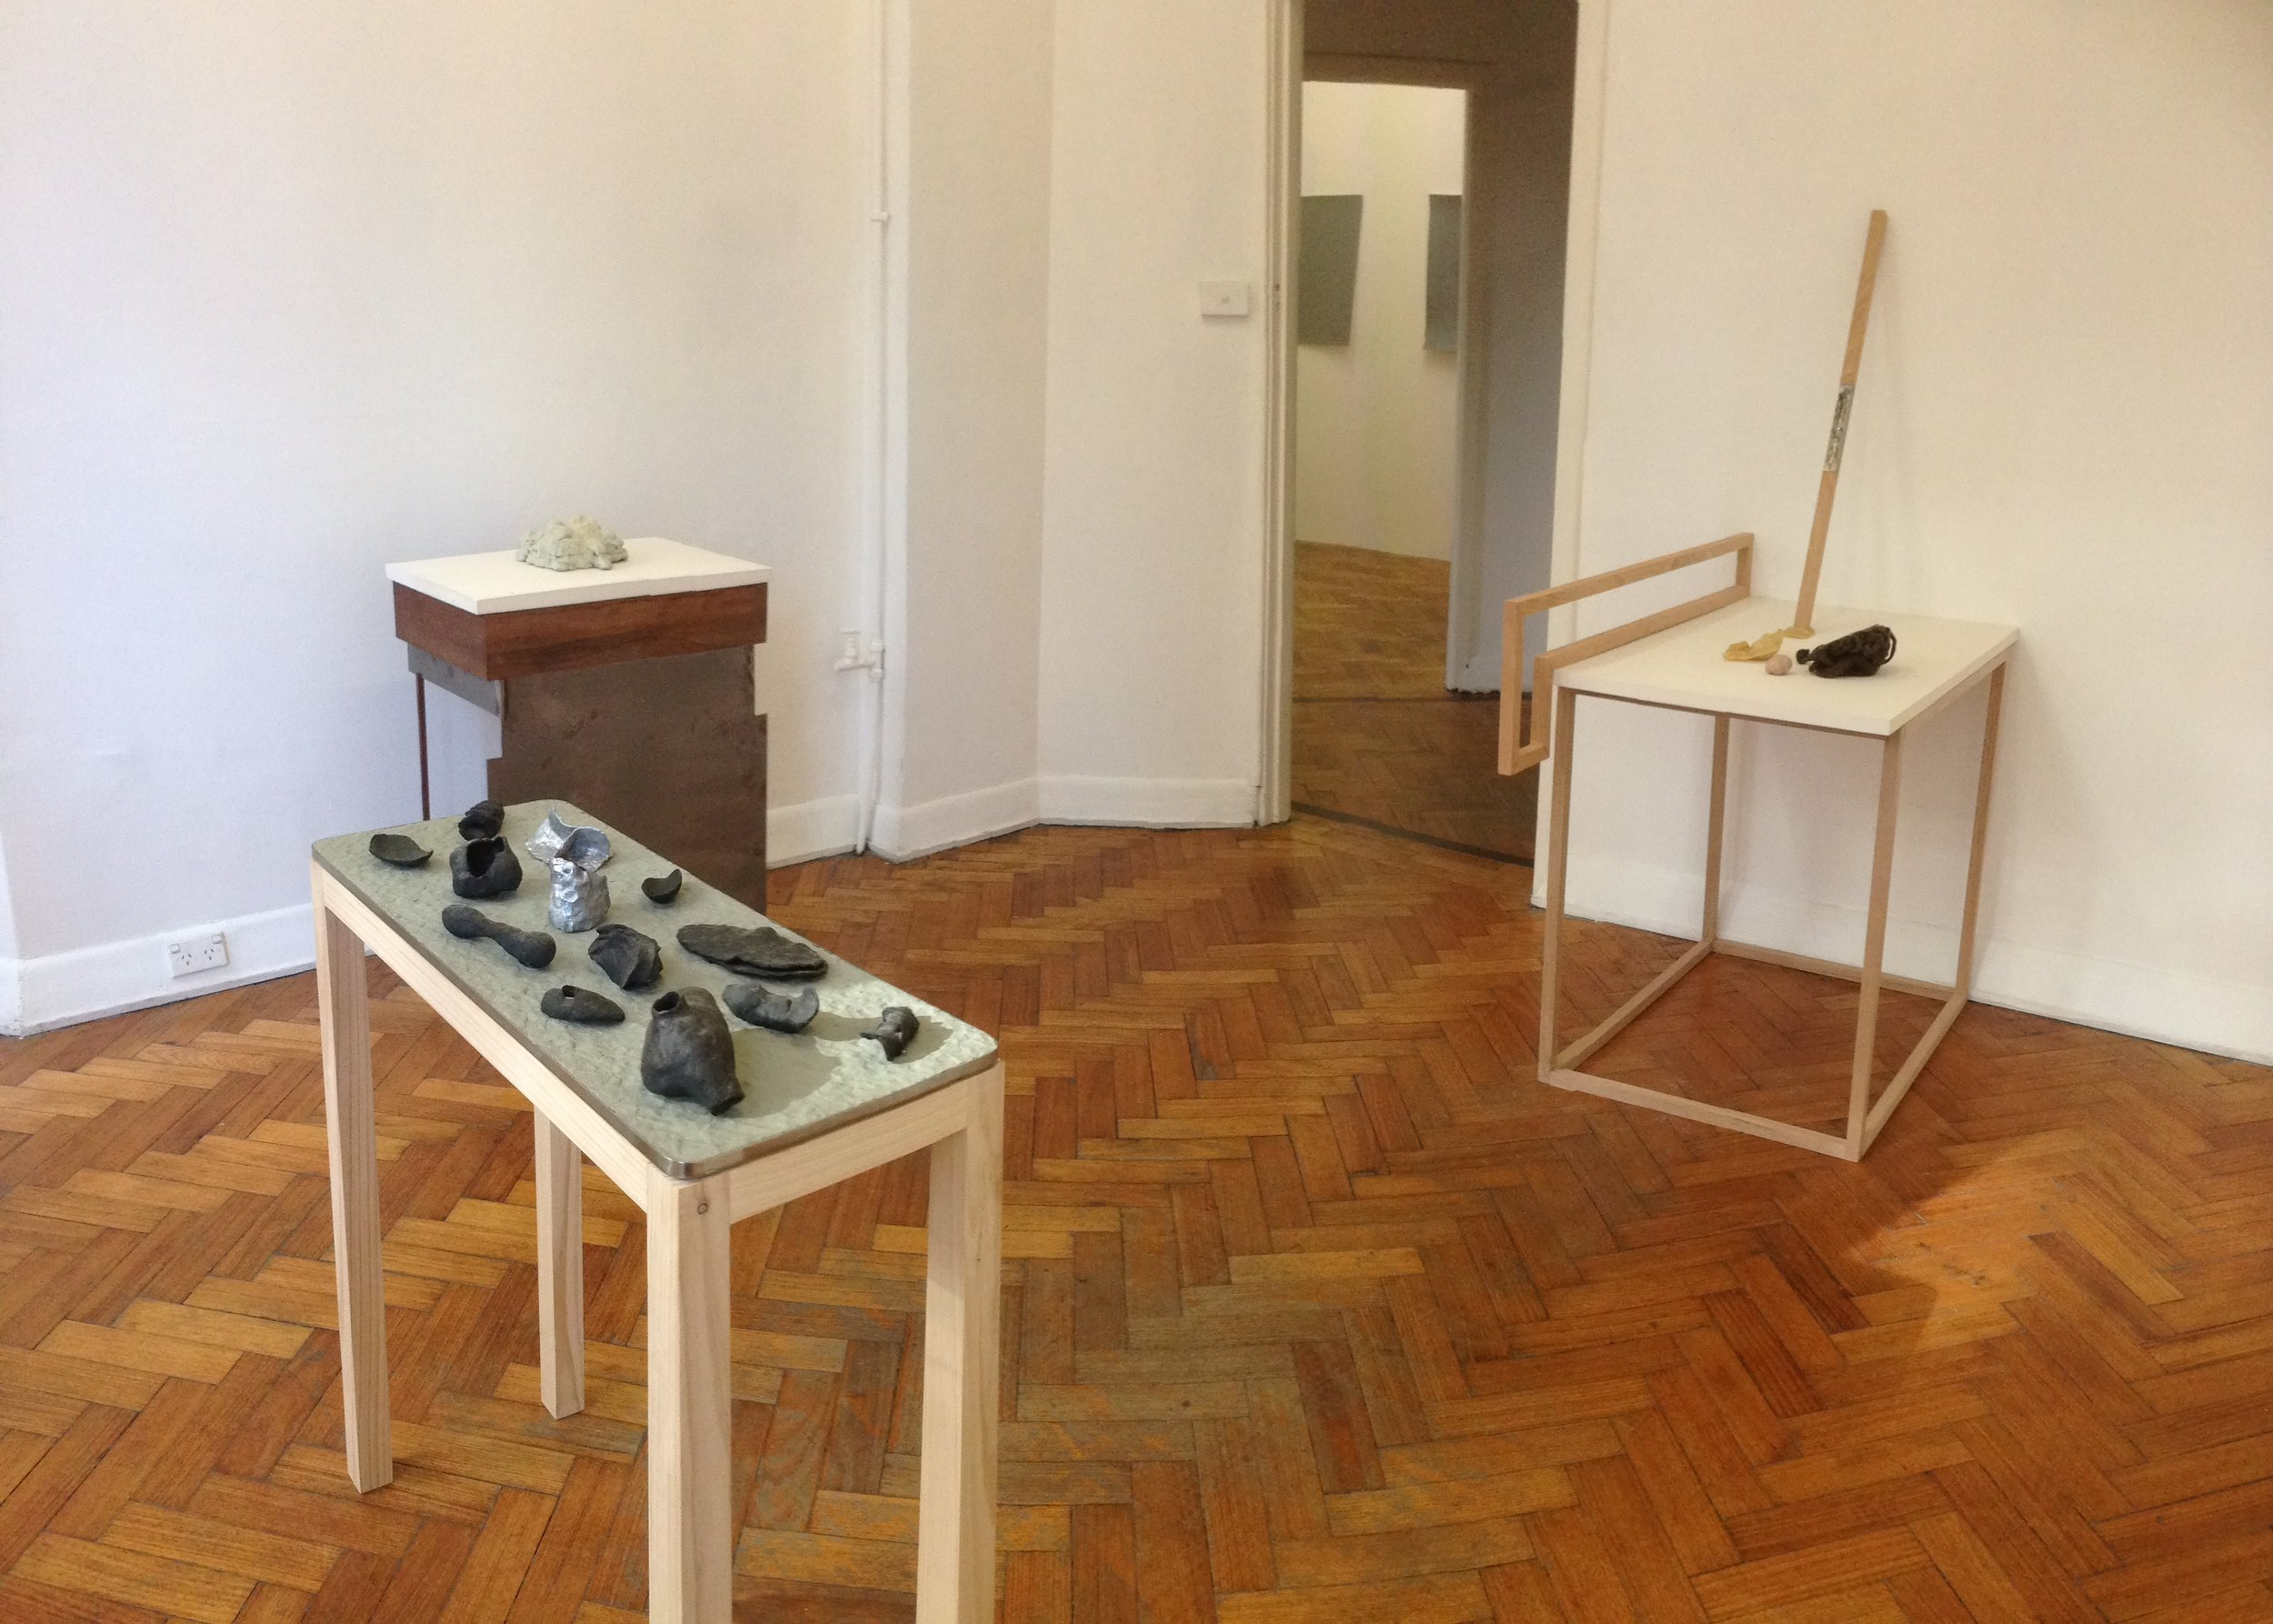 Table objects    entrance object,  cast bronze, cast aluminium, plasticine, stainless steel, wood 87 x 75 x 30cm;  bedroom object,  cast bronze, steel, wood, plaster, plasticine 97 x 61 x 41cm;  laundry objects , timber, cast steel, plaster, wool, wax, size variable.